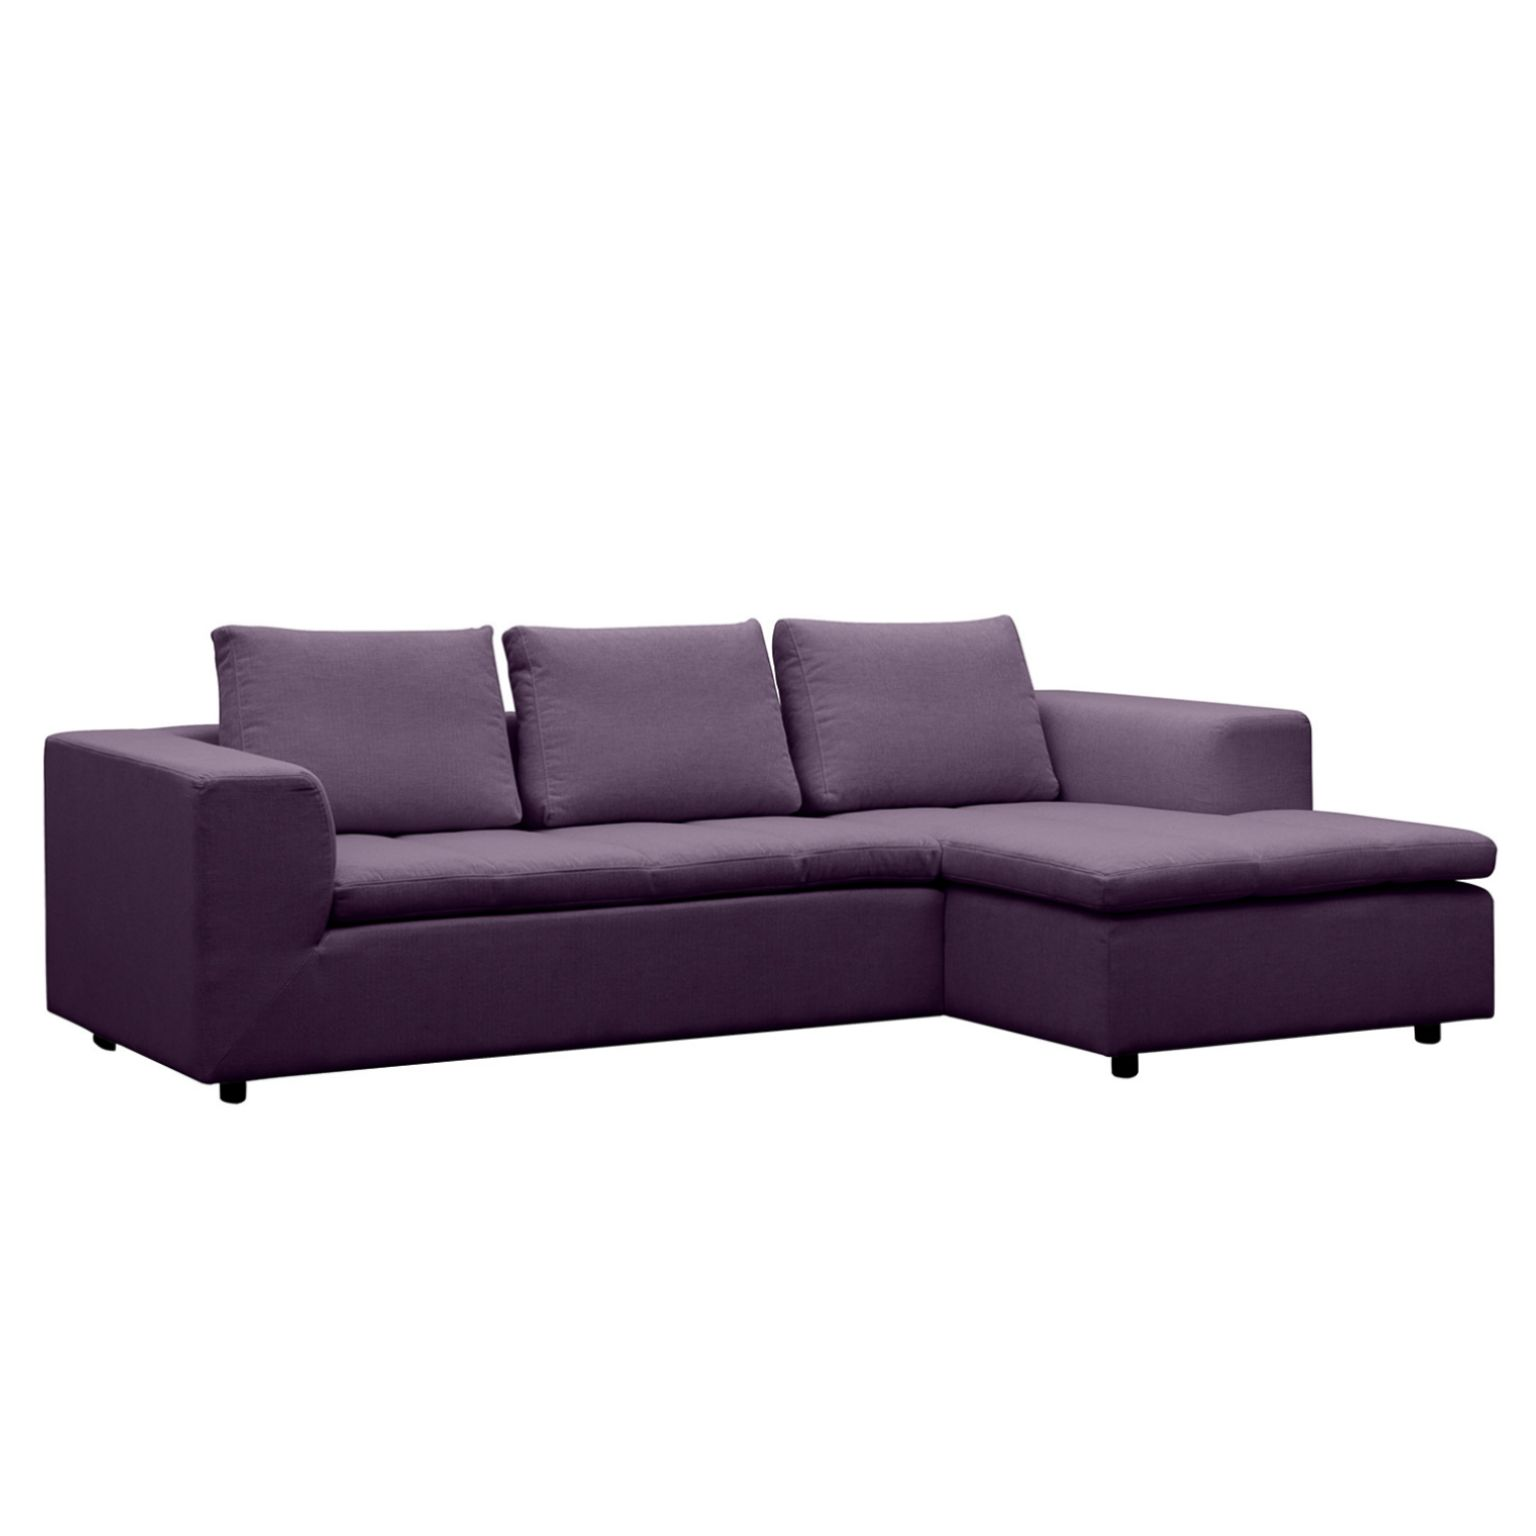 ecksofa brooklyn ii webstoff longchair ottomane davorstehend rechts stoff anda ii violett. Black Bedroom Furniture Sets. Home Design Ideas